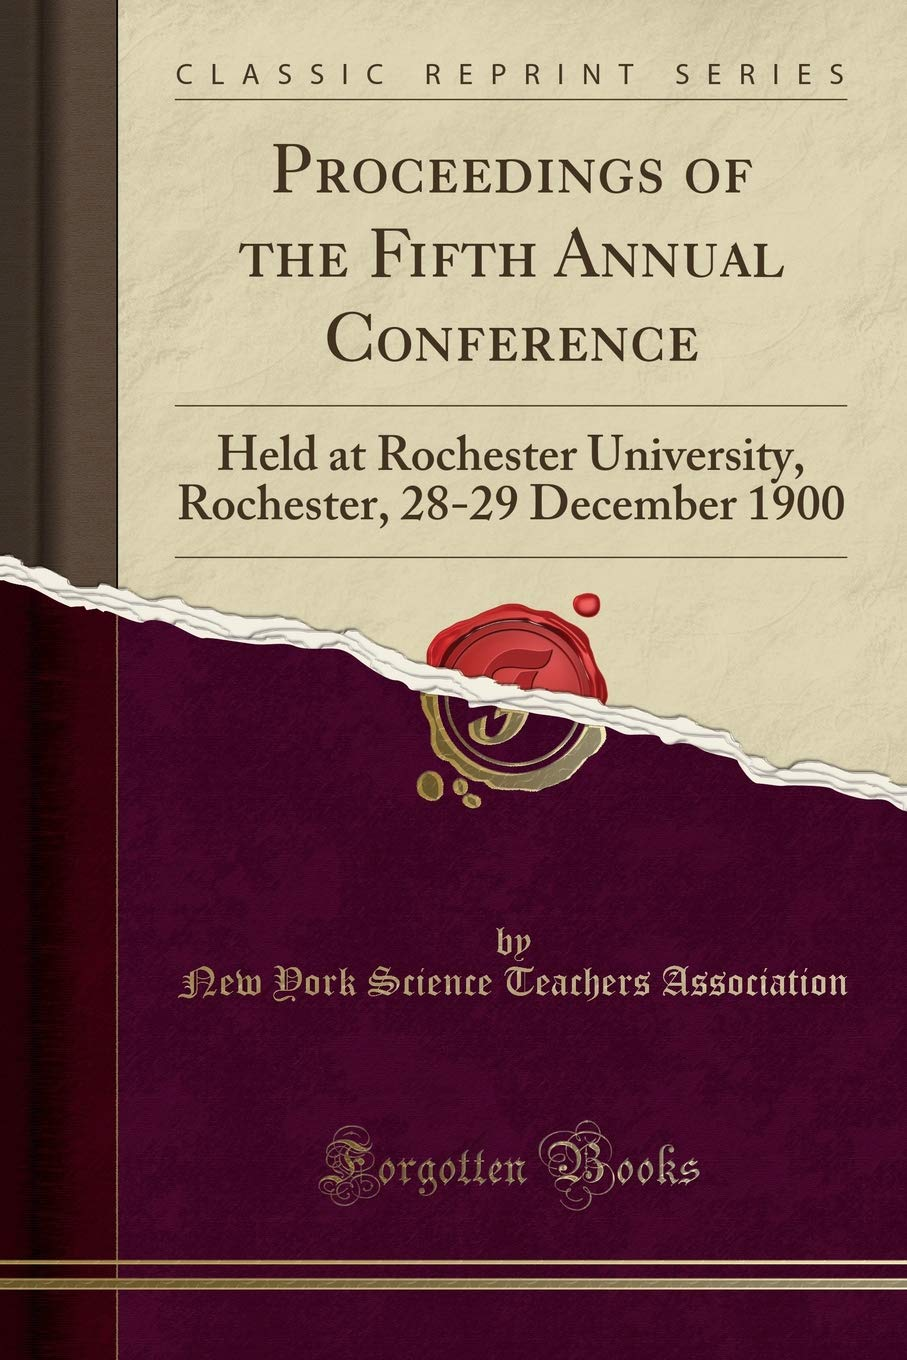 Download Proceedings of the Fifth Annual Conference: Held at Rochester University, Rochester, 28-29 December 1900 (Classic Reprint) ebook